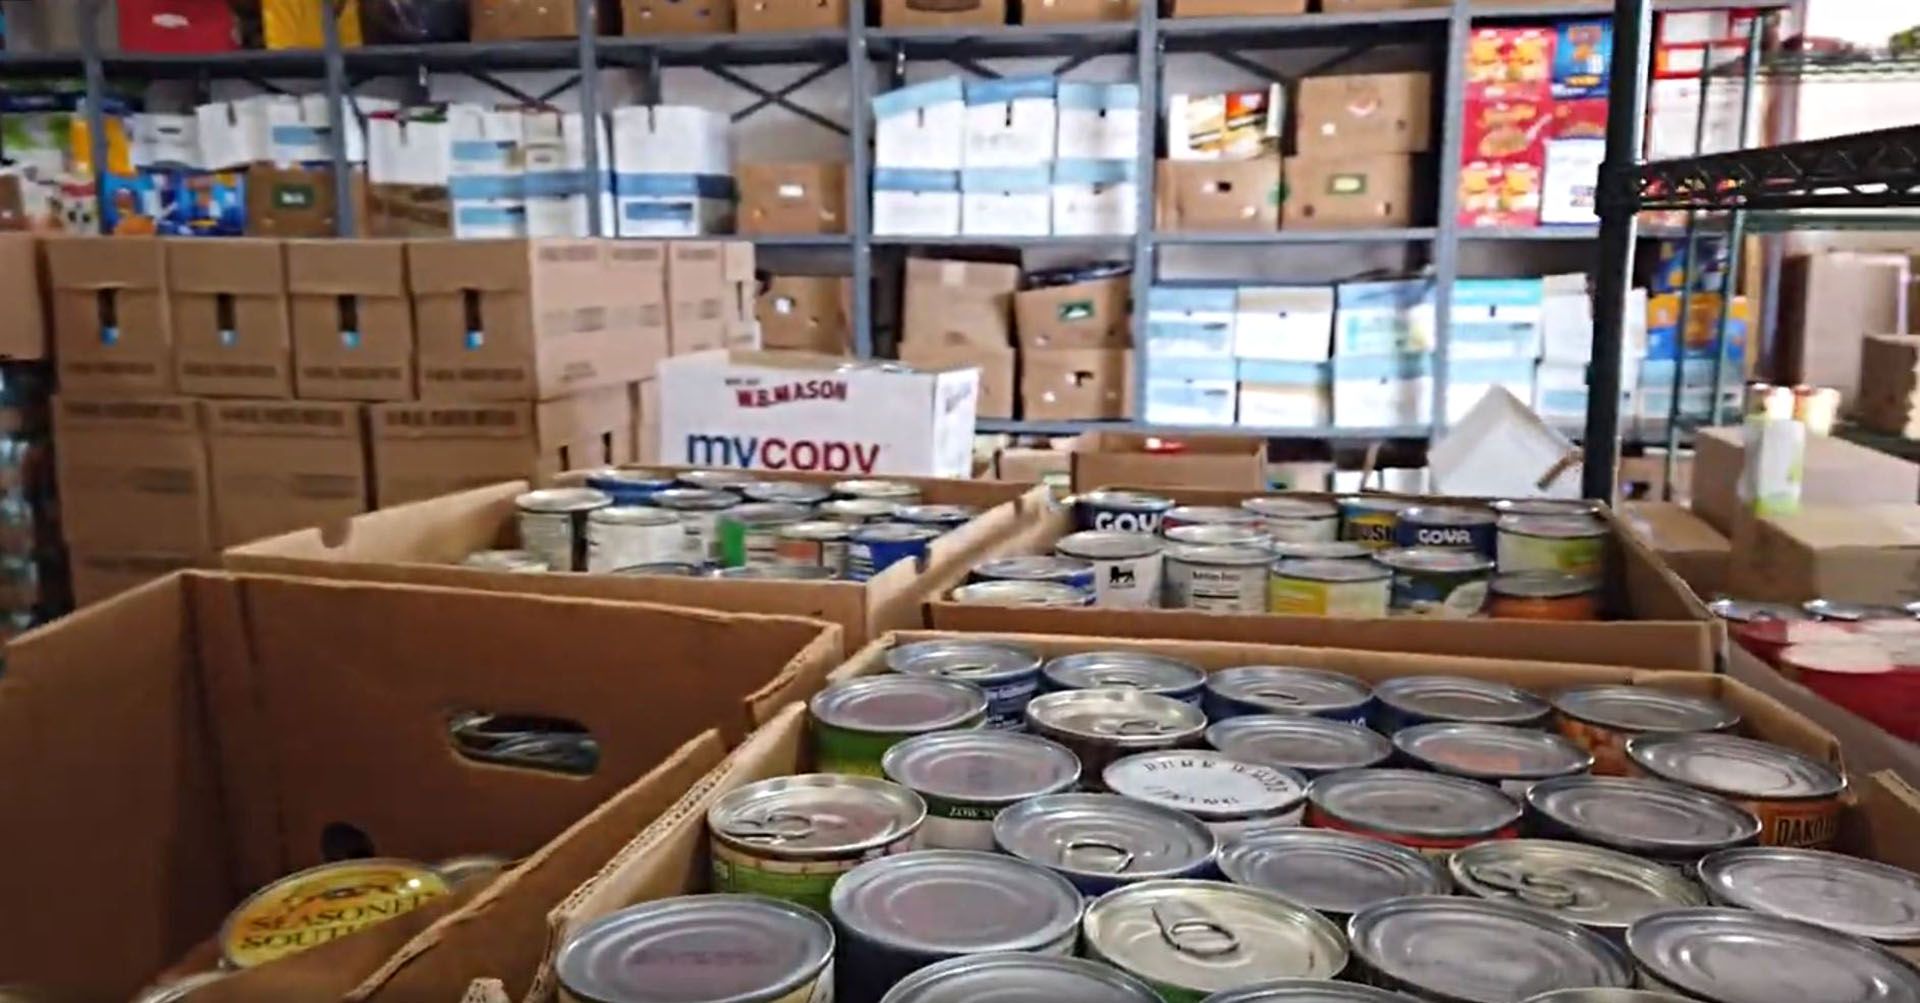 Helping the hungry: Community Feeding Task Force aiding those in need